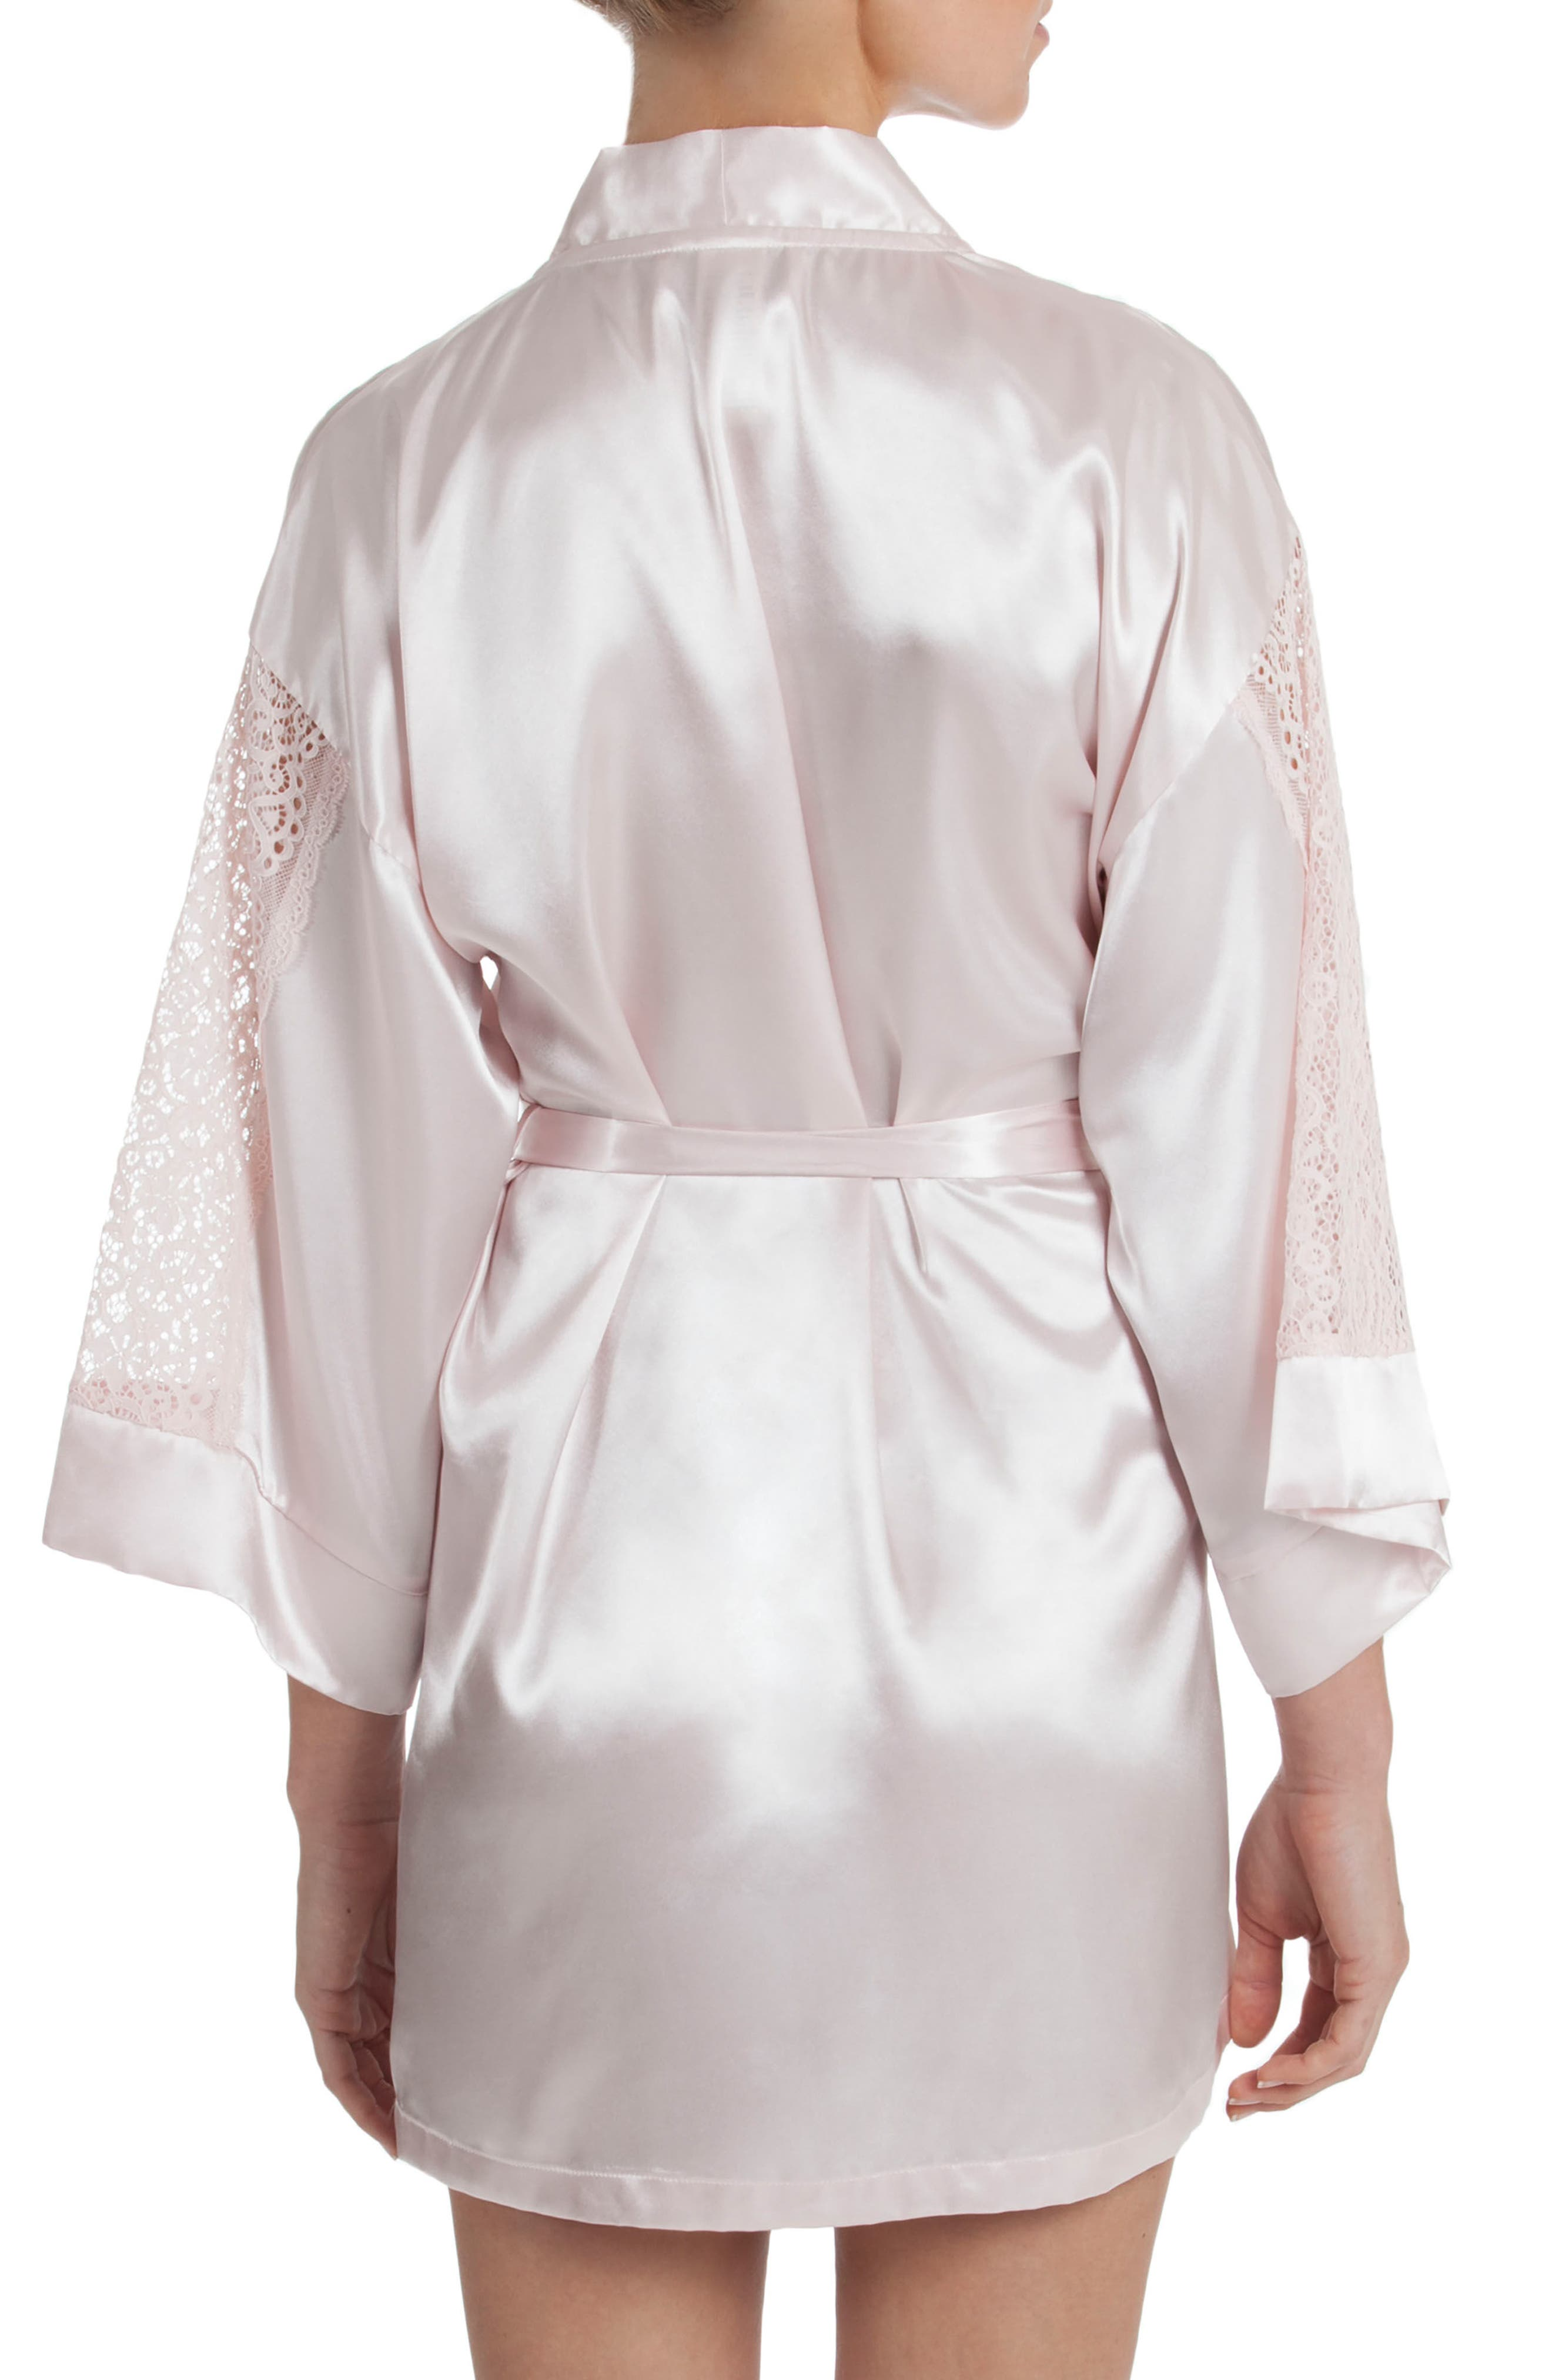 IN BLOOM BY JONQUIL,                             Satin Robe,                             Alternate thumbnail 2, color,                             950